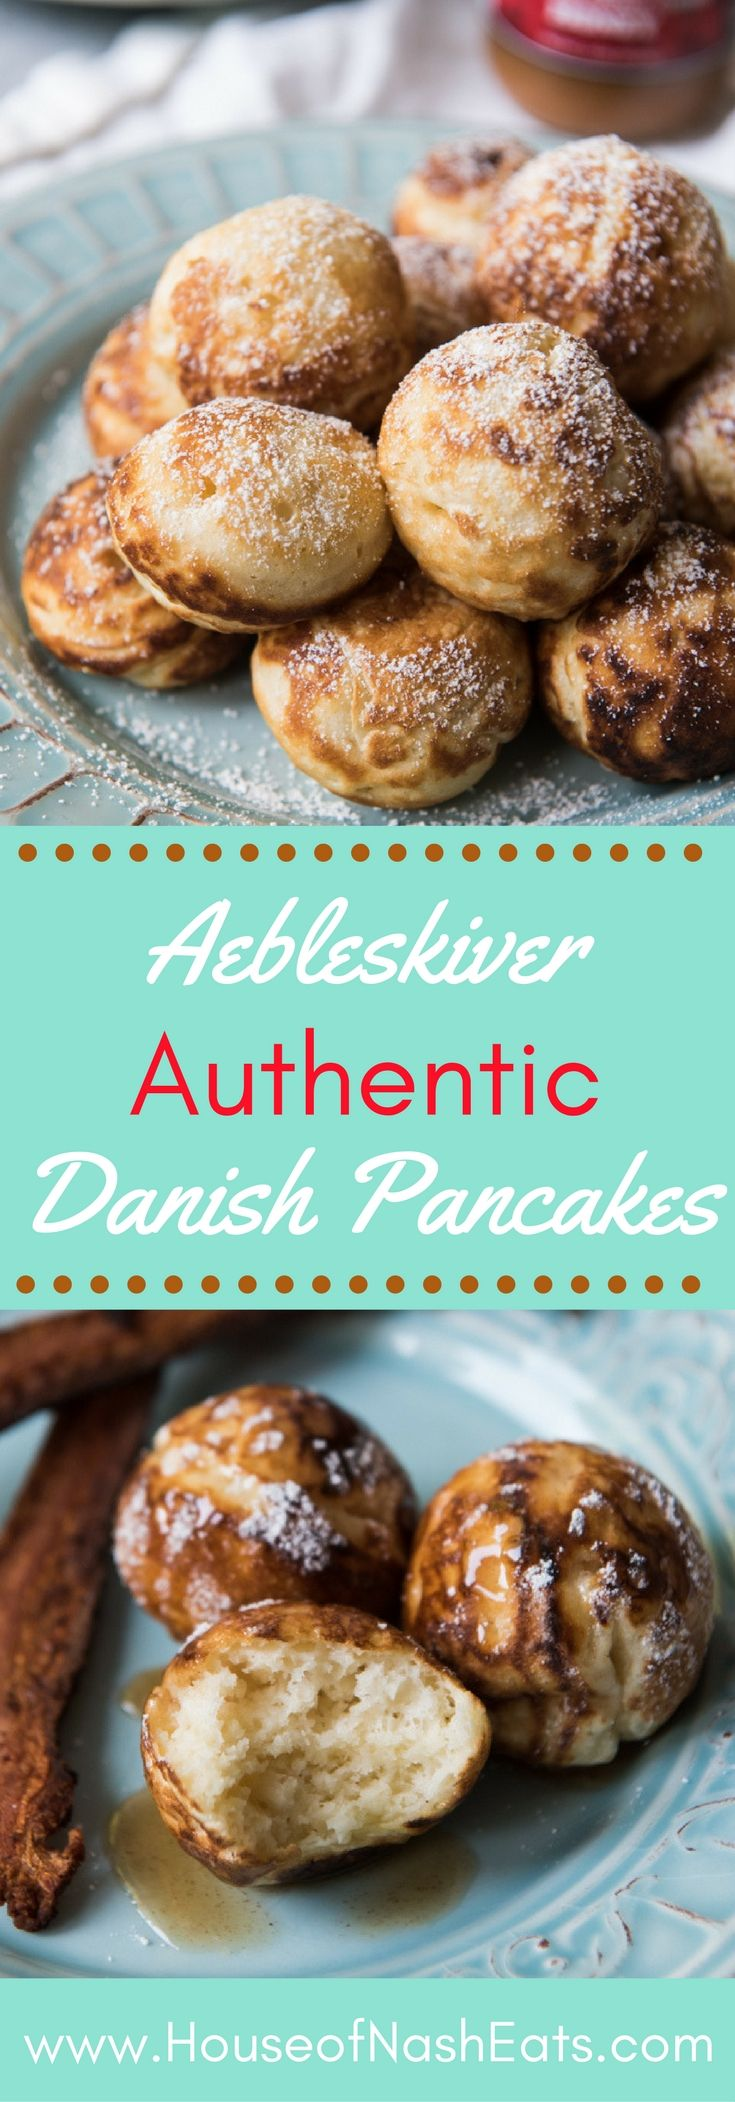 Aebleskiver are authentic puffy Danish pancake balls and a traditional Danish dessert most often served during the Christmas season. Enjoy them year-round as a delicious breakfast treat!  A local Danish restaurant here serves them.  Yum!